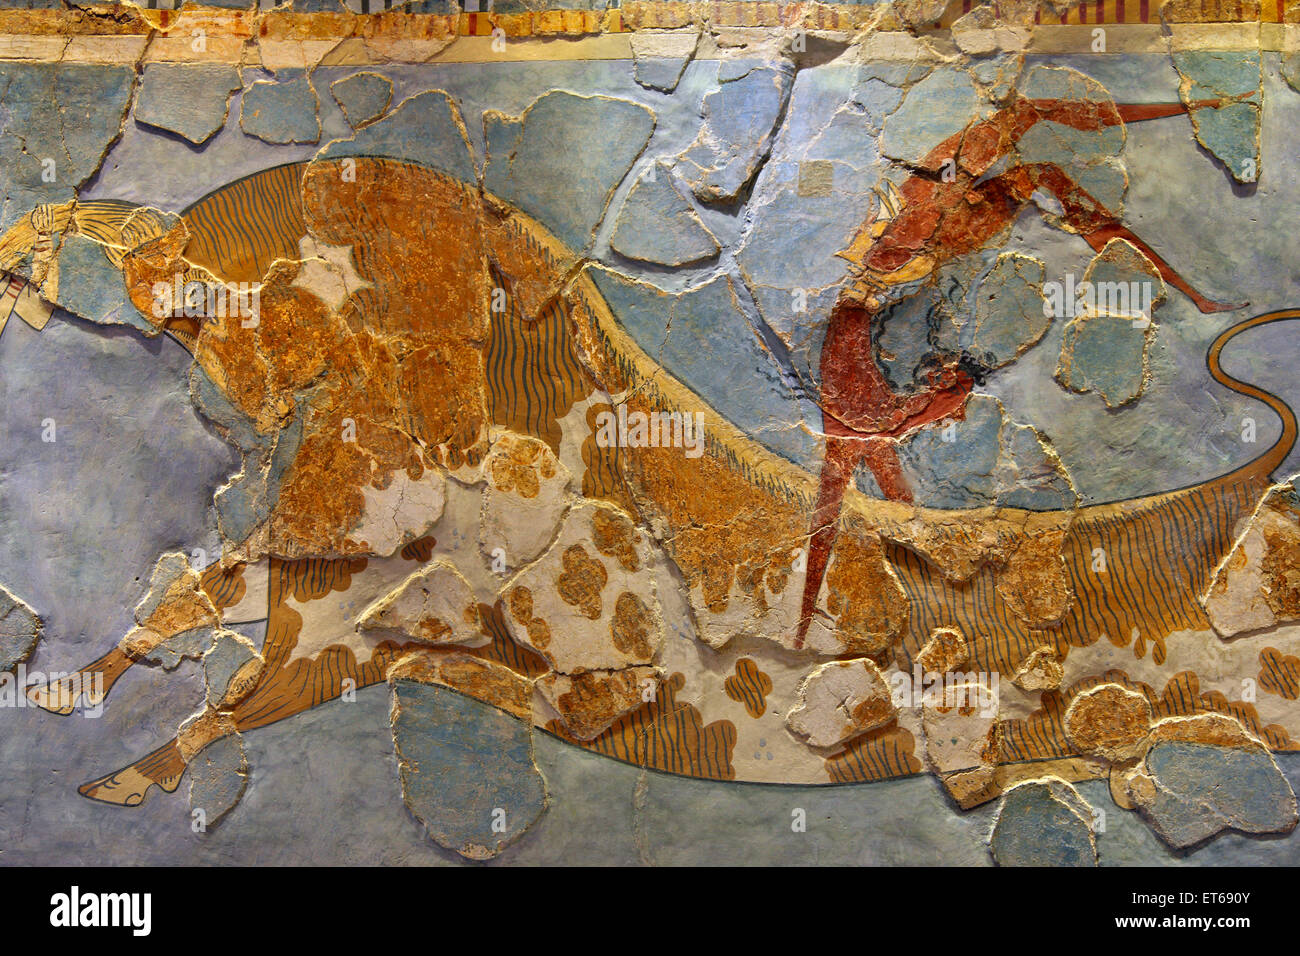 The Bull-leaping fresco (detail)  from the Minoan Palace of Knossos, in the Archaeological Museum of Heraklion, - Stock Image